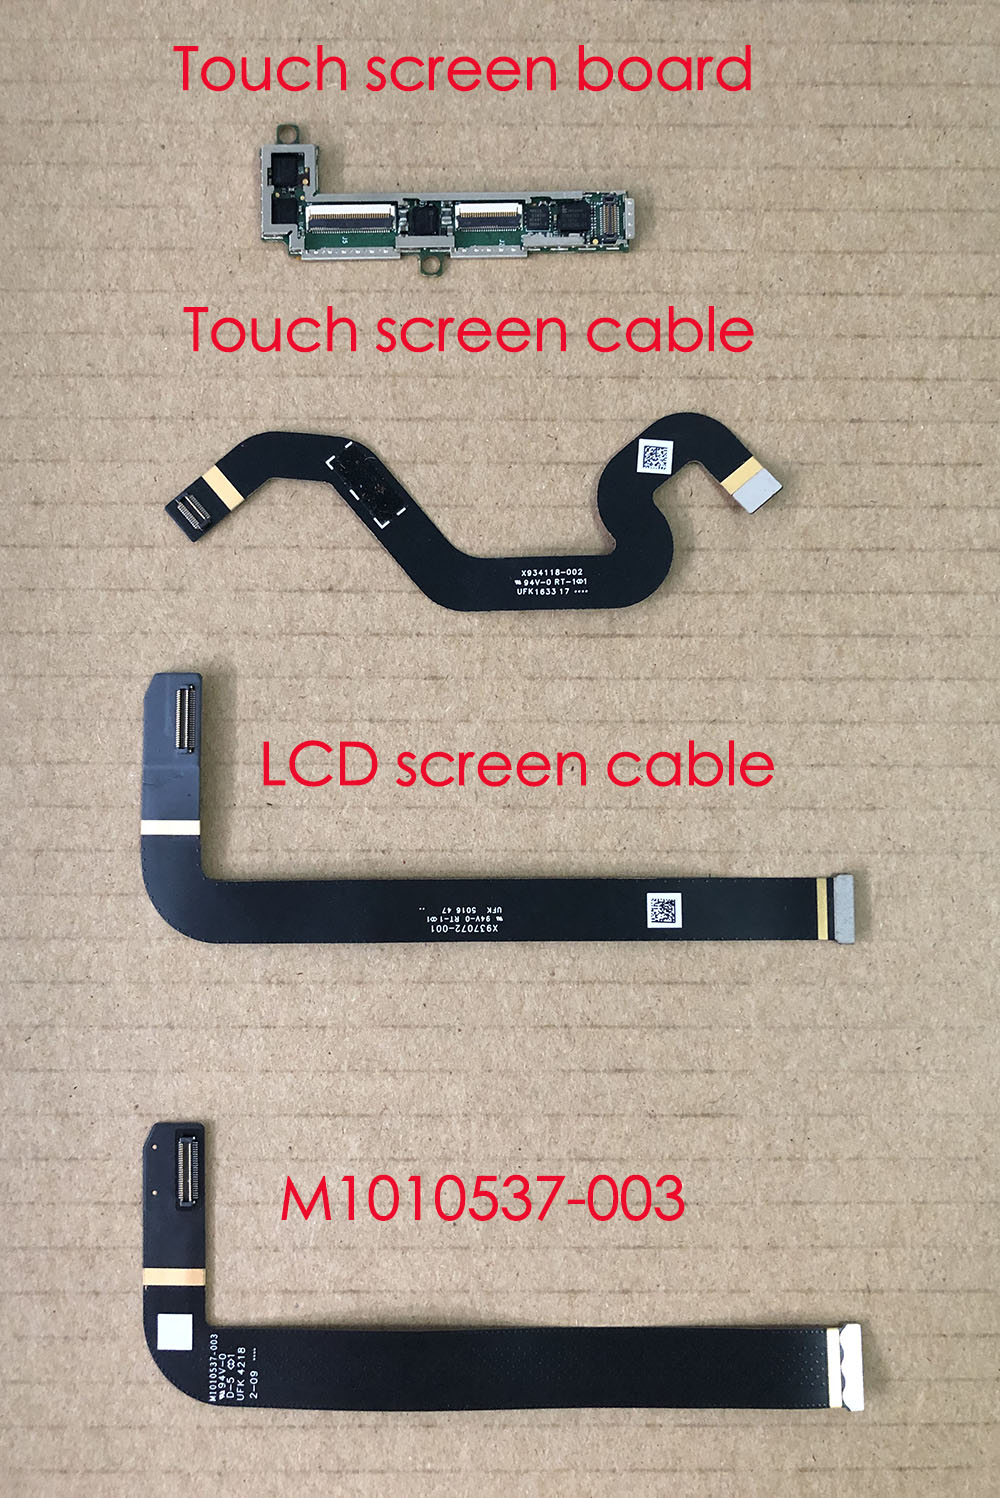 Cable For Microsoft Surface Pro4 1724 Touch LCD Flex Cable Connectors Small Board X934118-002  X937072-001 M1010537-003